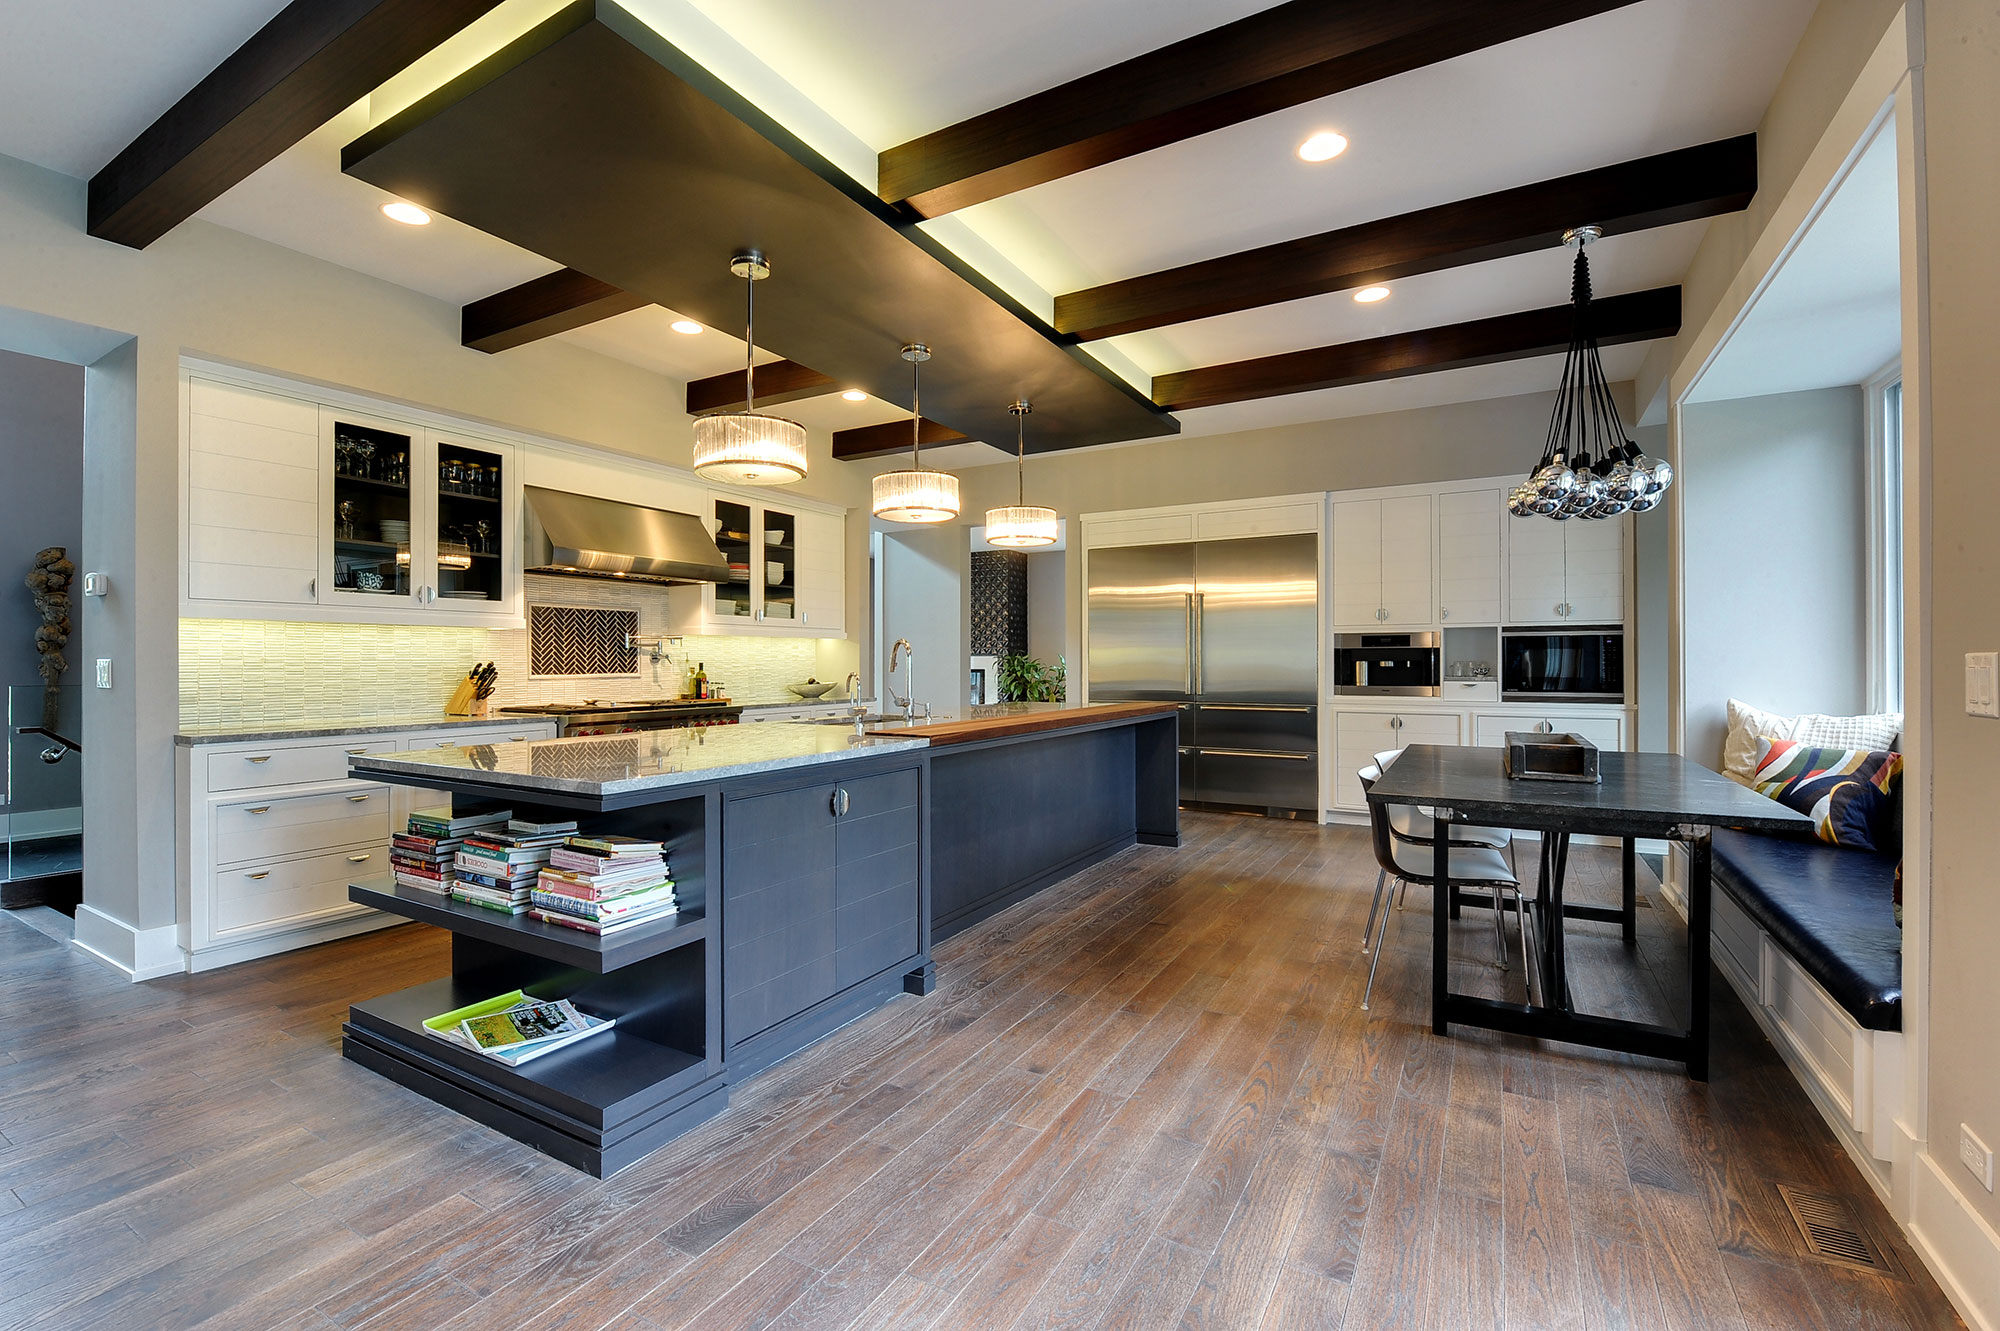 Modern Kitchen With Wooden Beams, Granite Countertops, And Stainless Steel  Appliances, Eclectic Modern